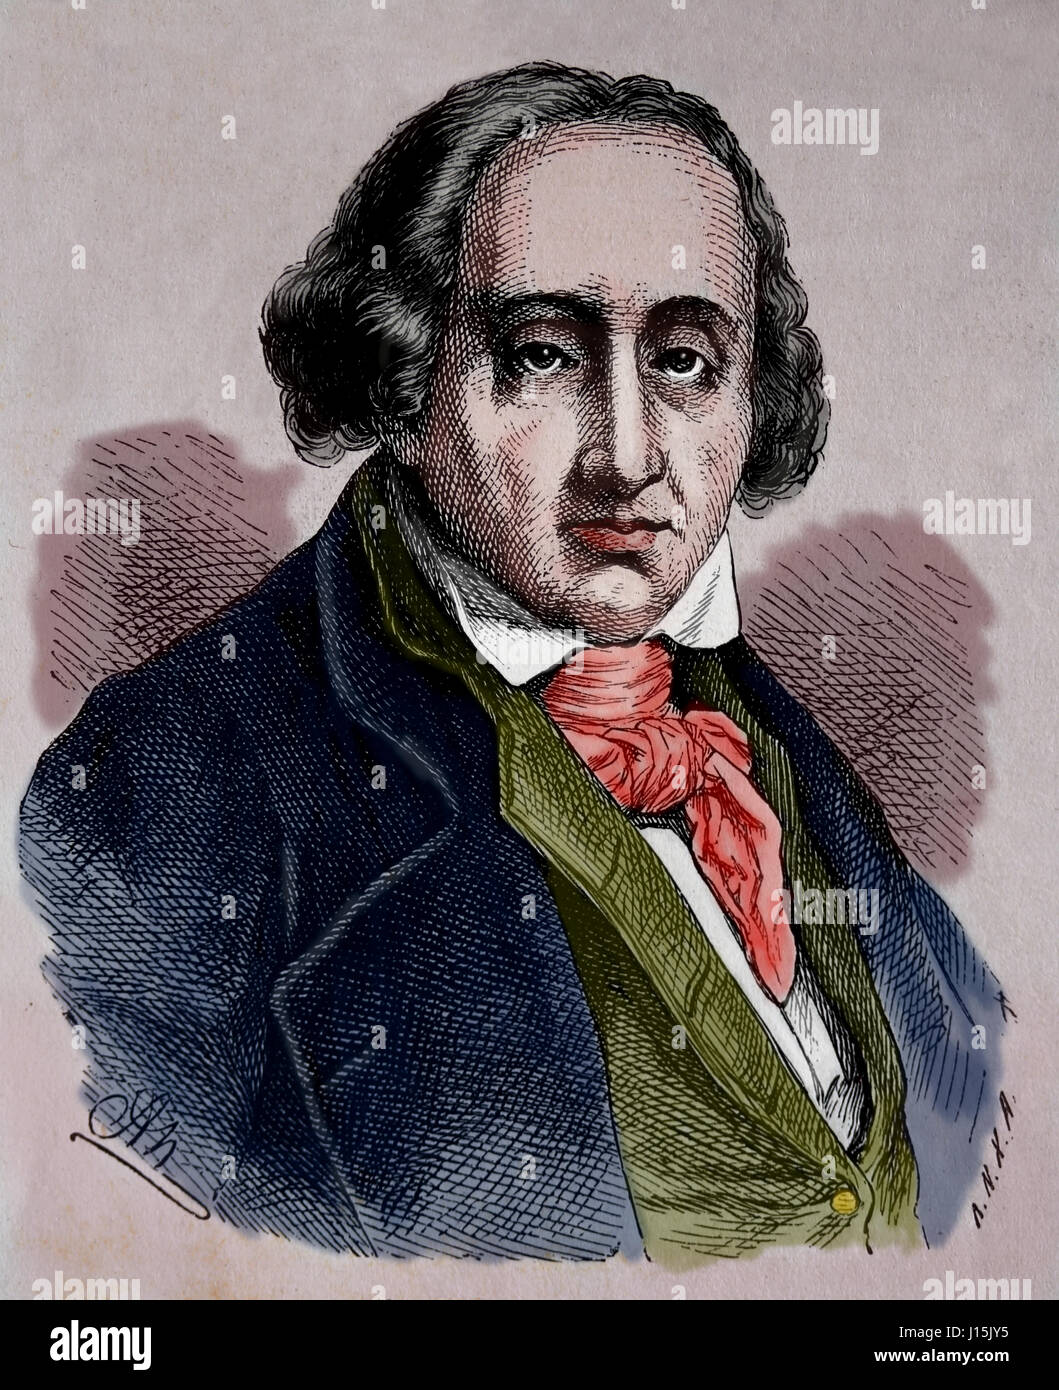 Joseph Maria Jacquard (1752-1834). French merchant. Inventor of programmable loom.  Engraving, Nuestro Siglo, 1883. - Stock Image